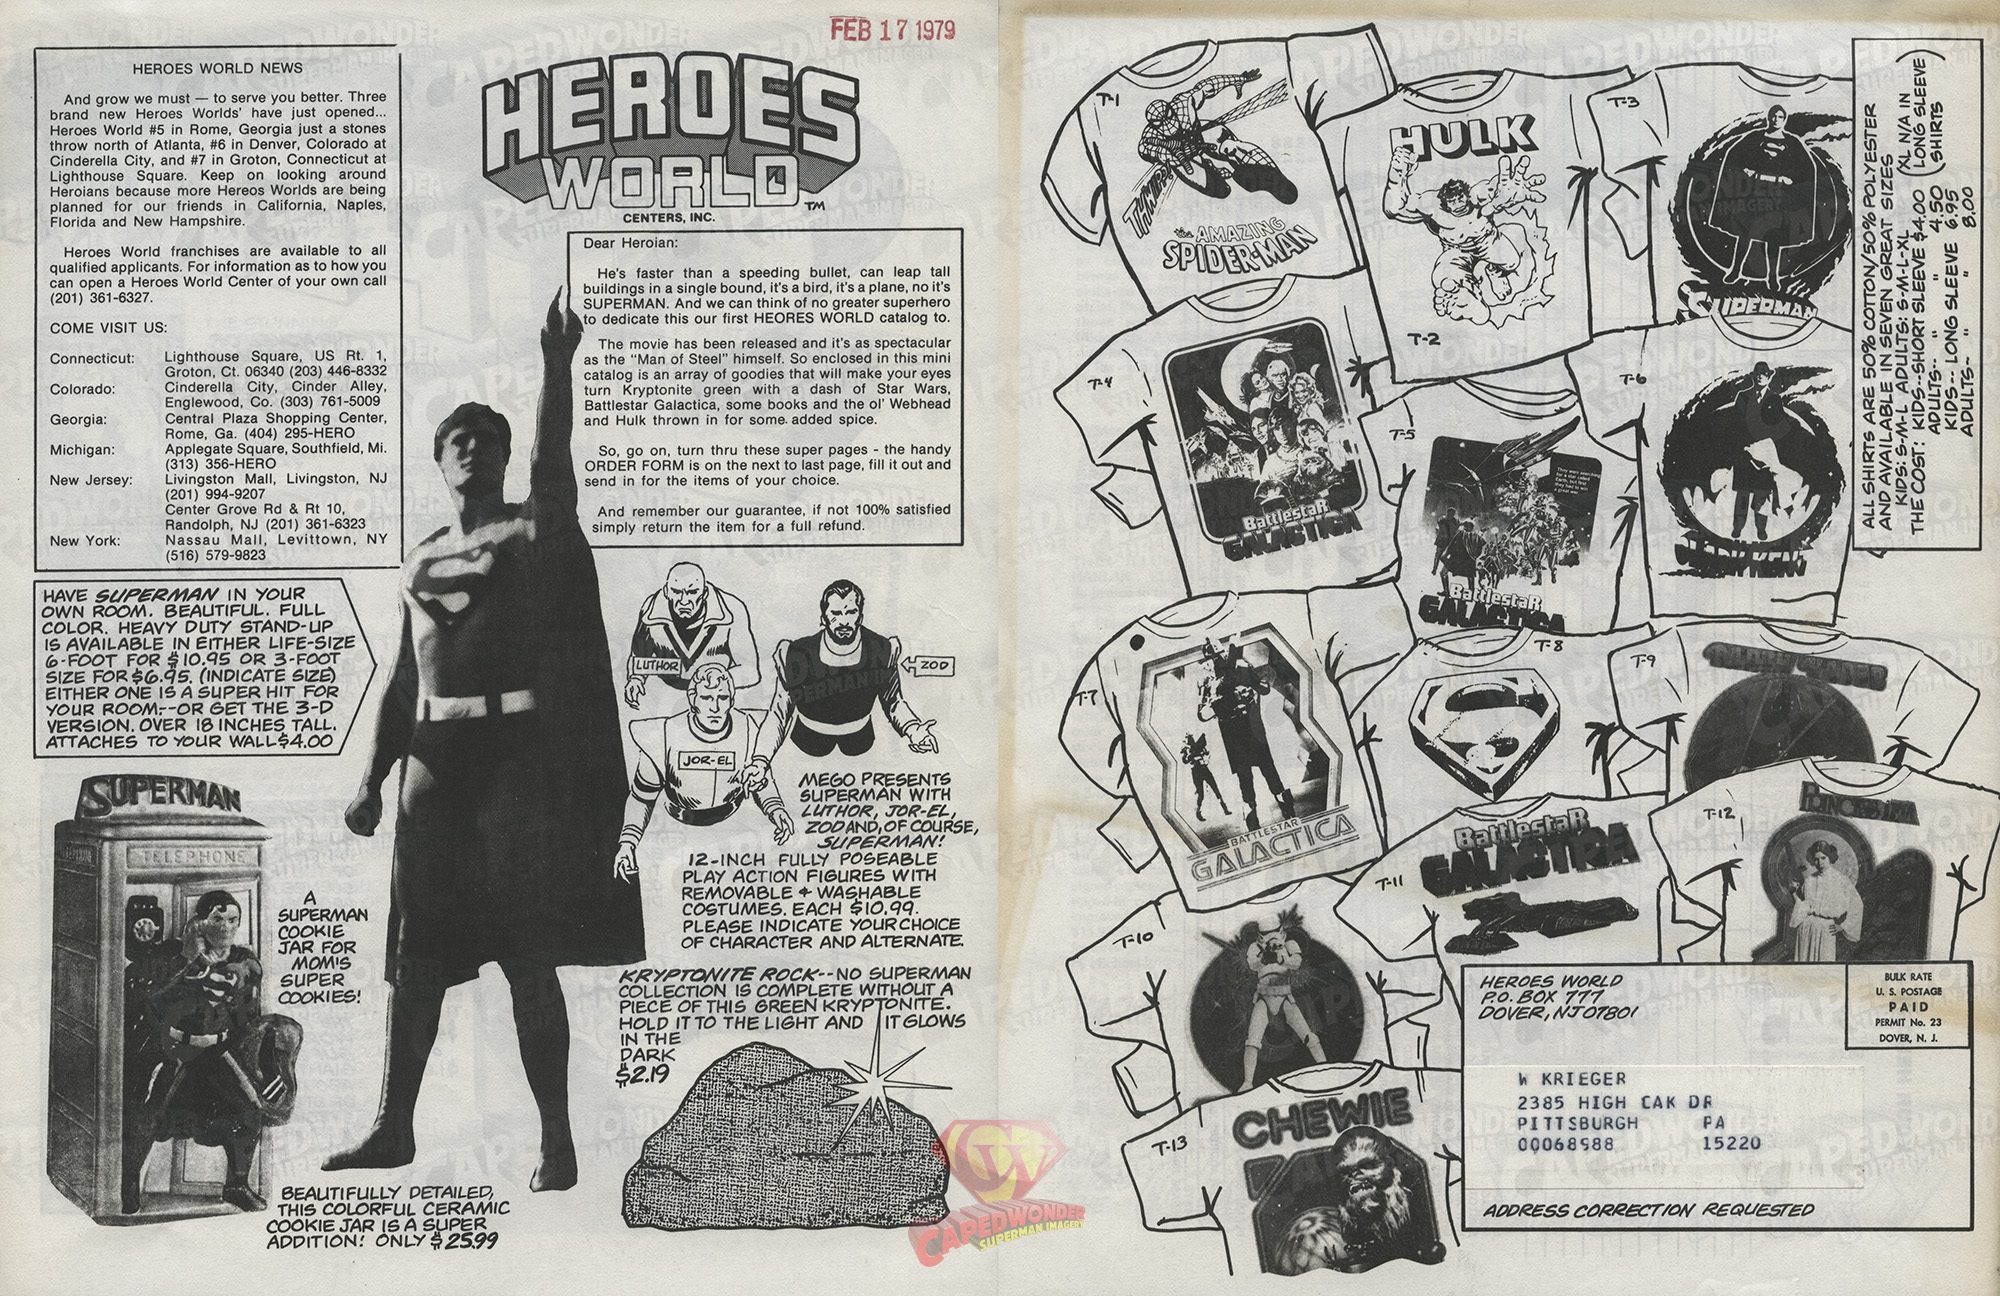 STM-Heroes-World-Centers-brochure-Feb-17-1979-all-pages-1